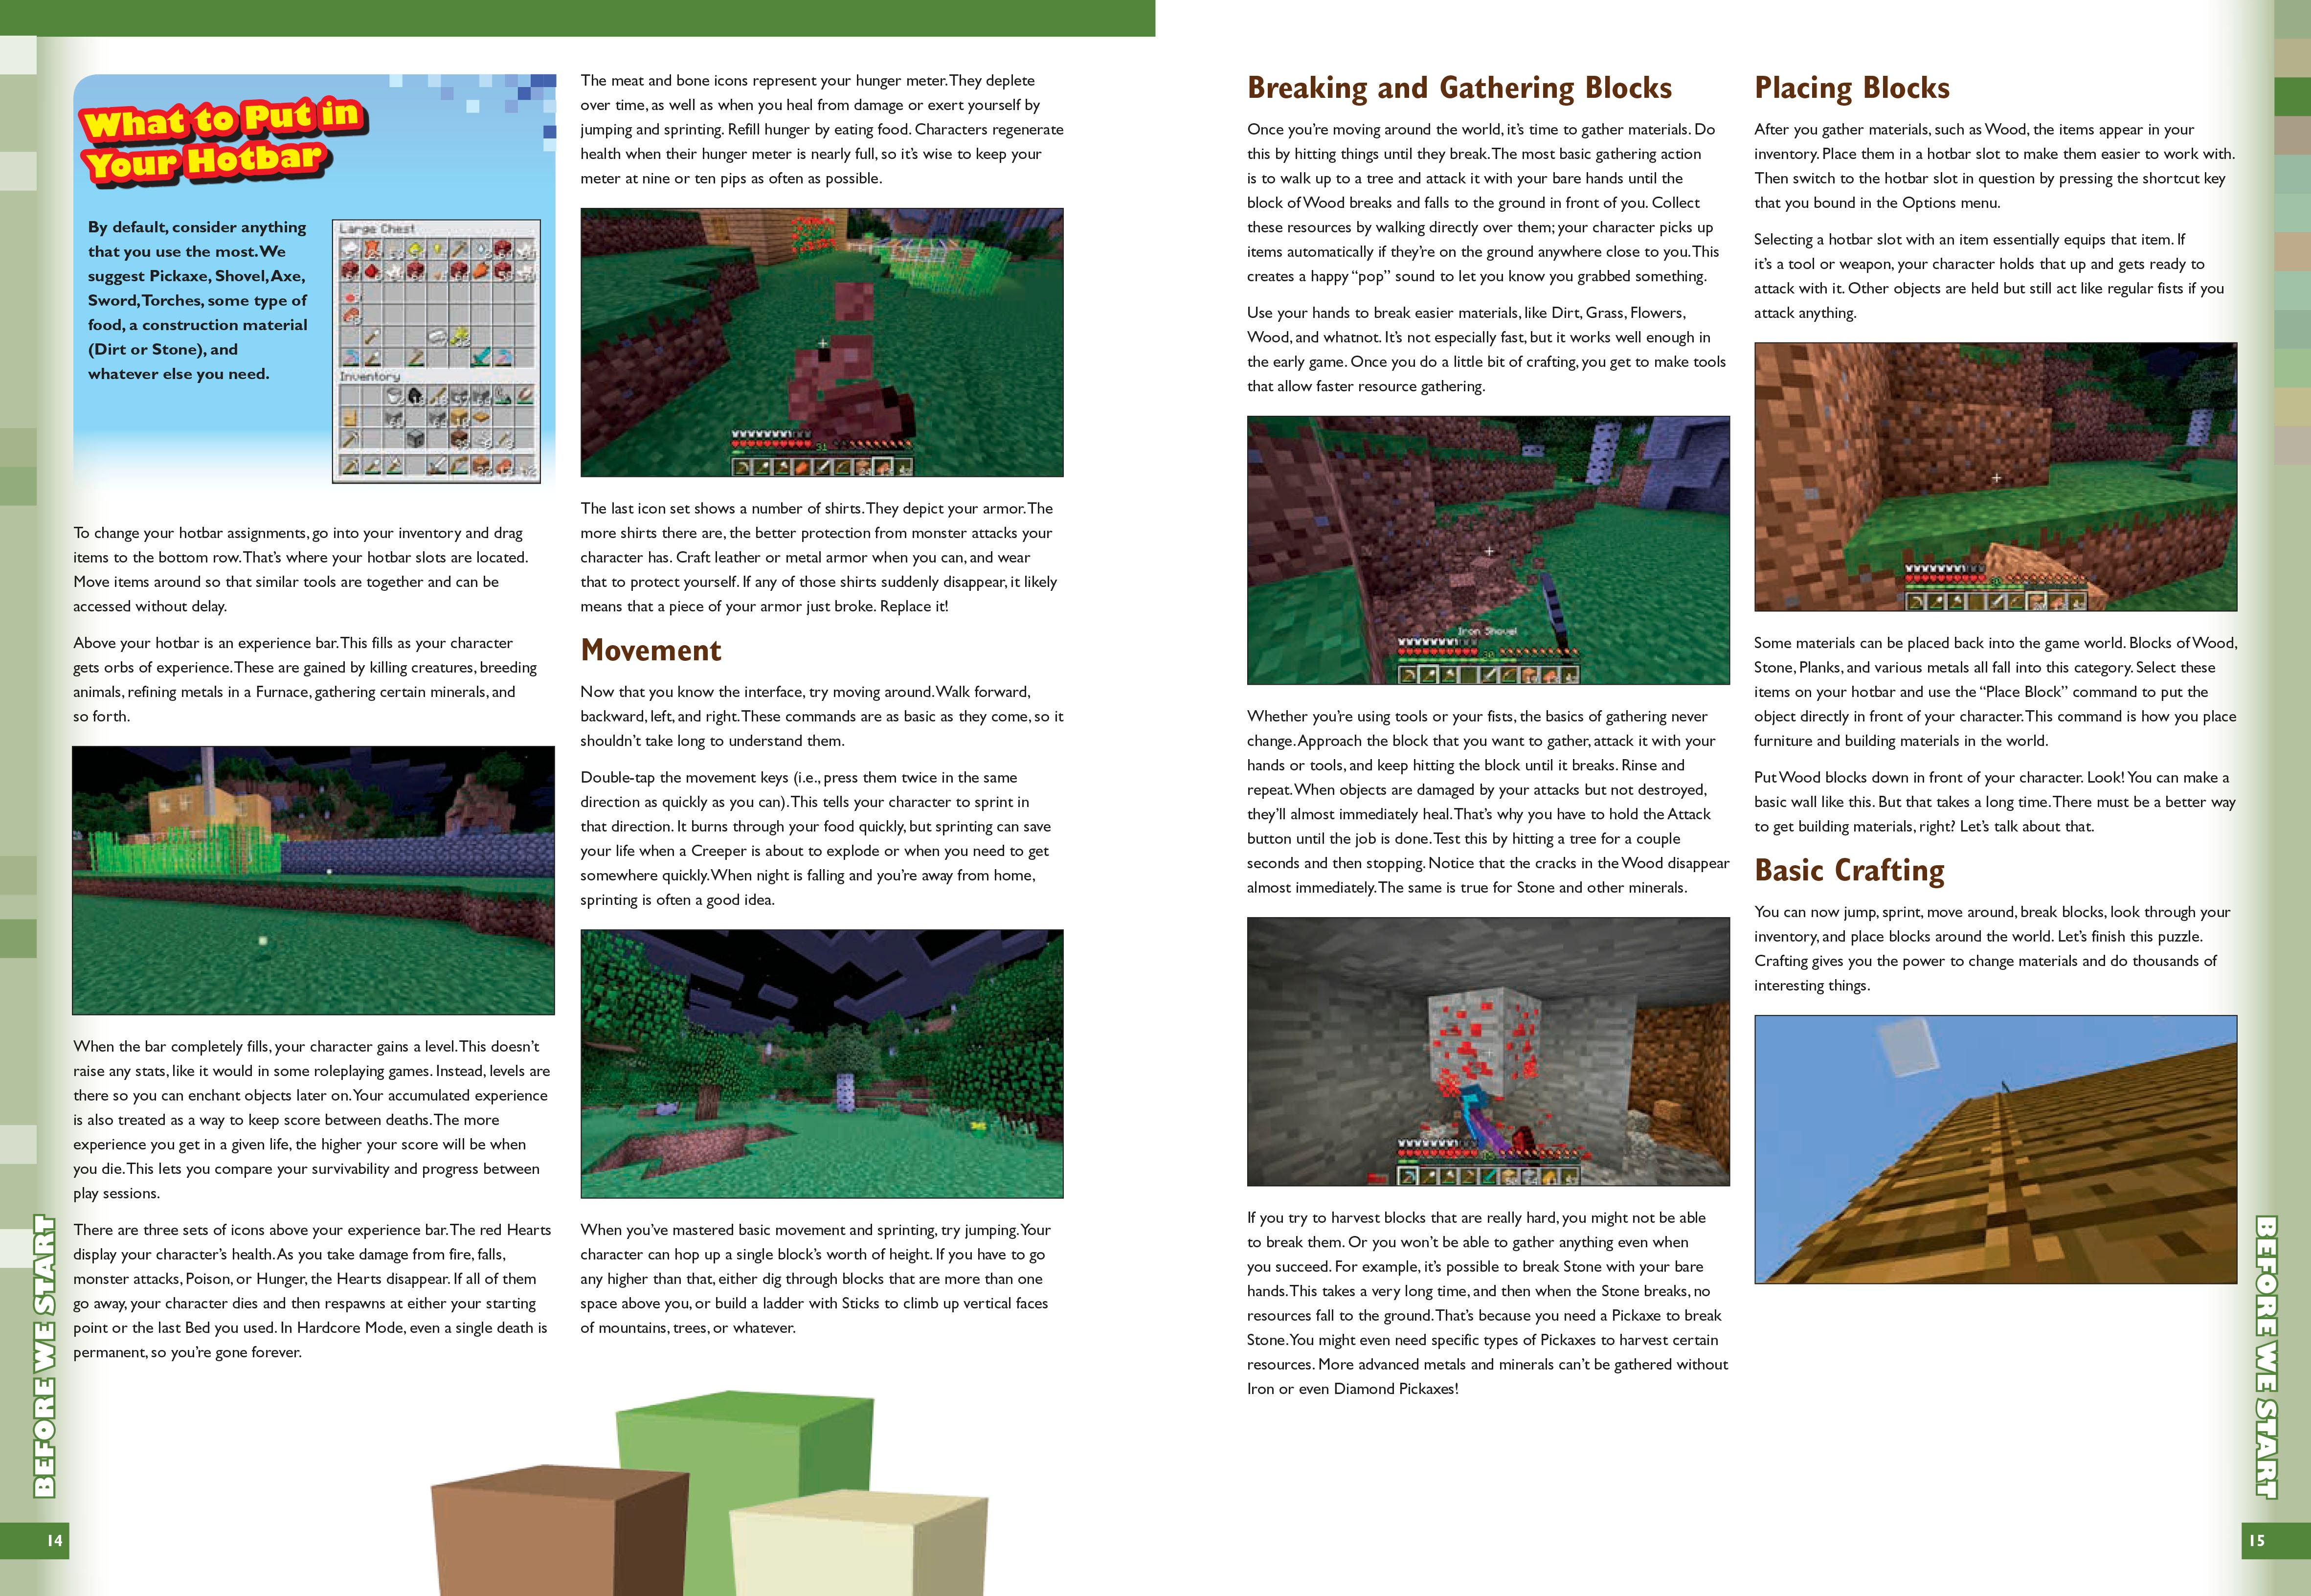 Taming The Wilds Mastering Minecraft Fourth Edition Michael 3 Way Switch Then To Hotbar Slot In Question By Pressing Shortcut Key That You Bound Options Menu